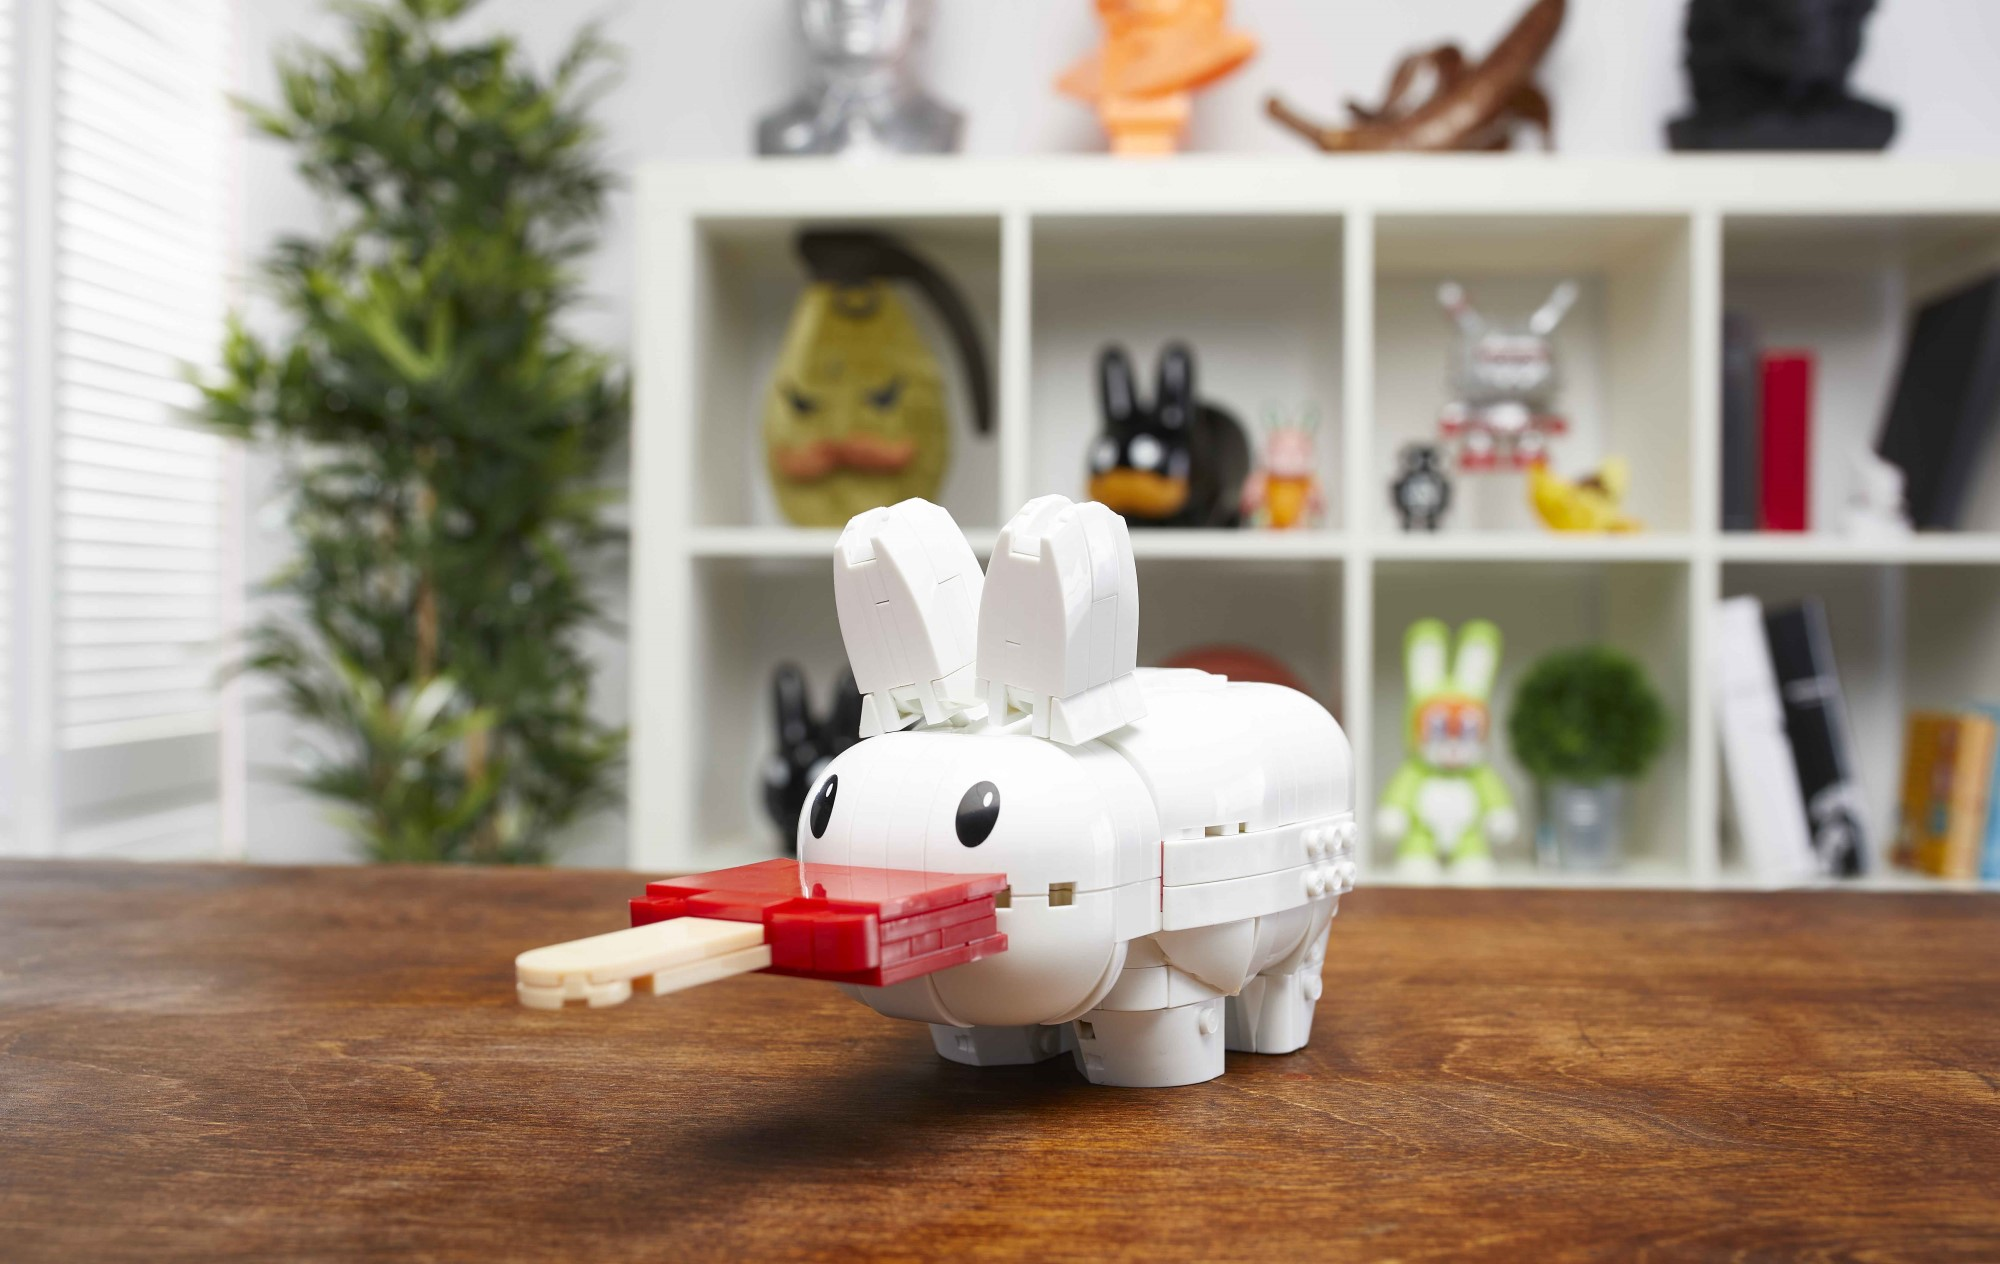 MEGA collabs with Frank Kozik for a build-your-own Labbit 16